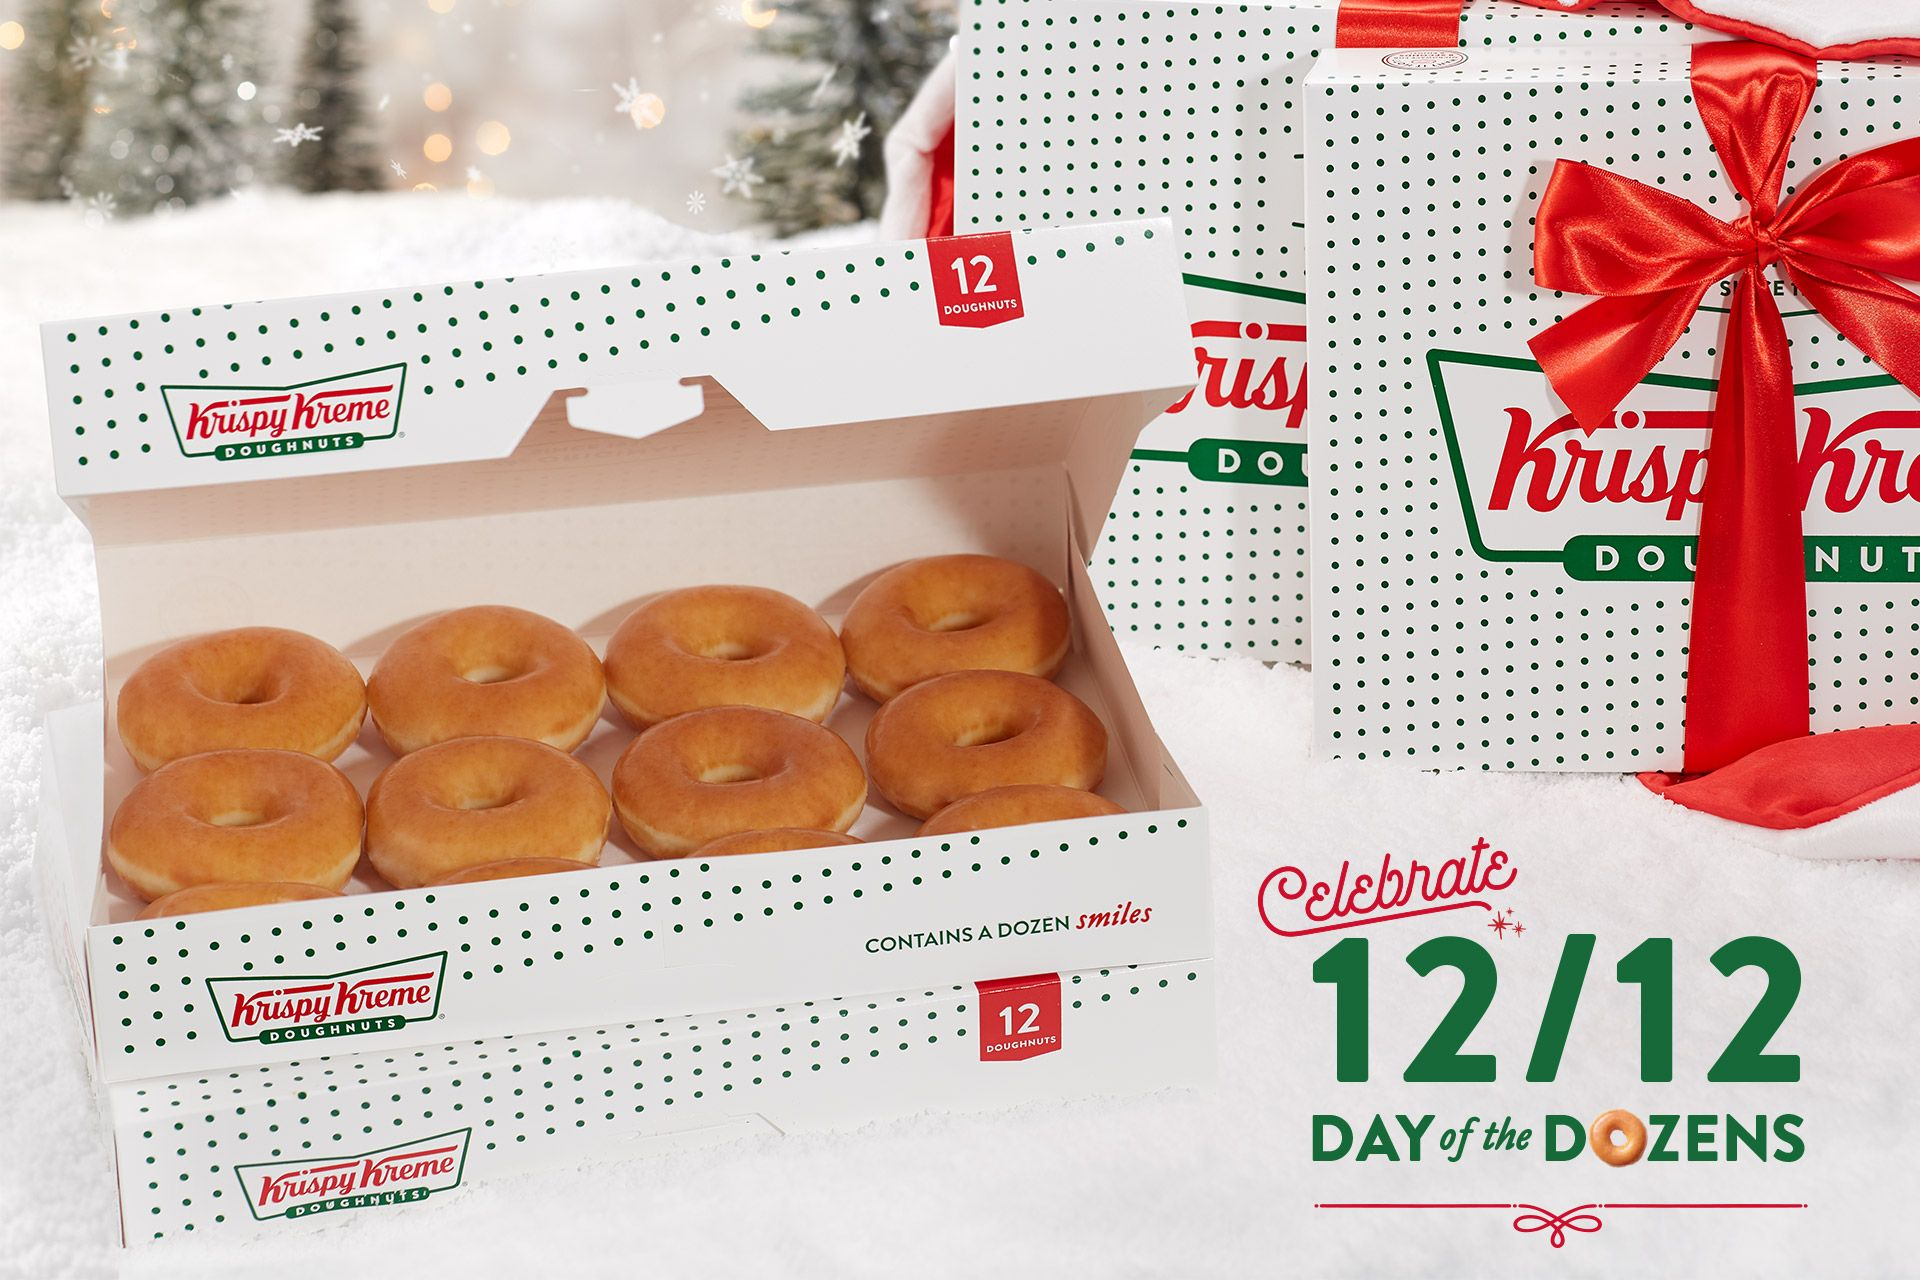 Krispy Kreme Is Giving Out $1 Dozens for the Annual 'Day of Dozens' Promotion